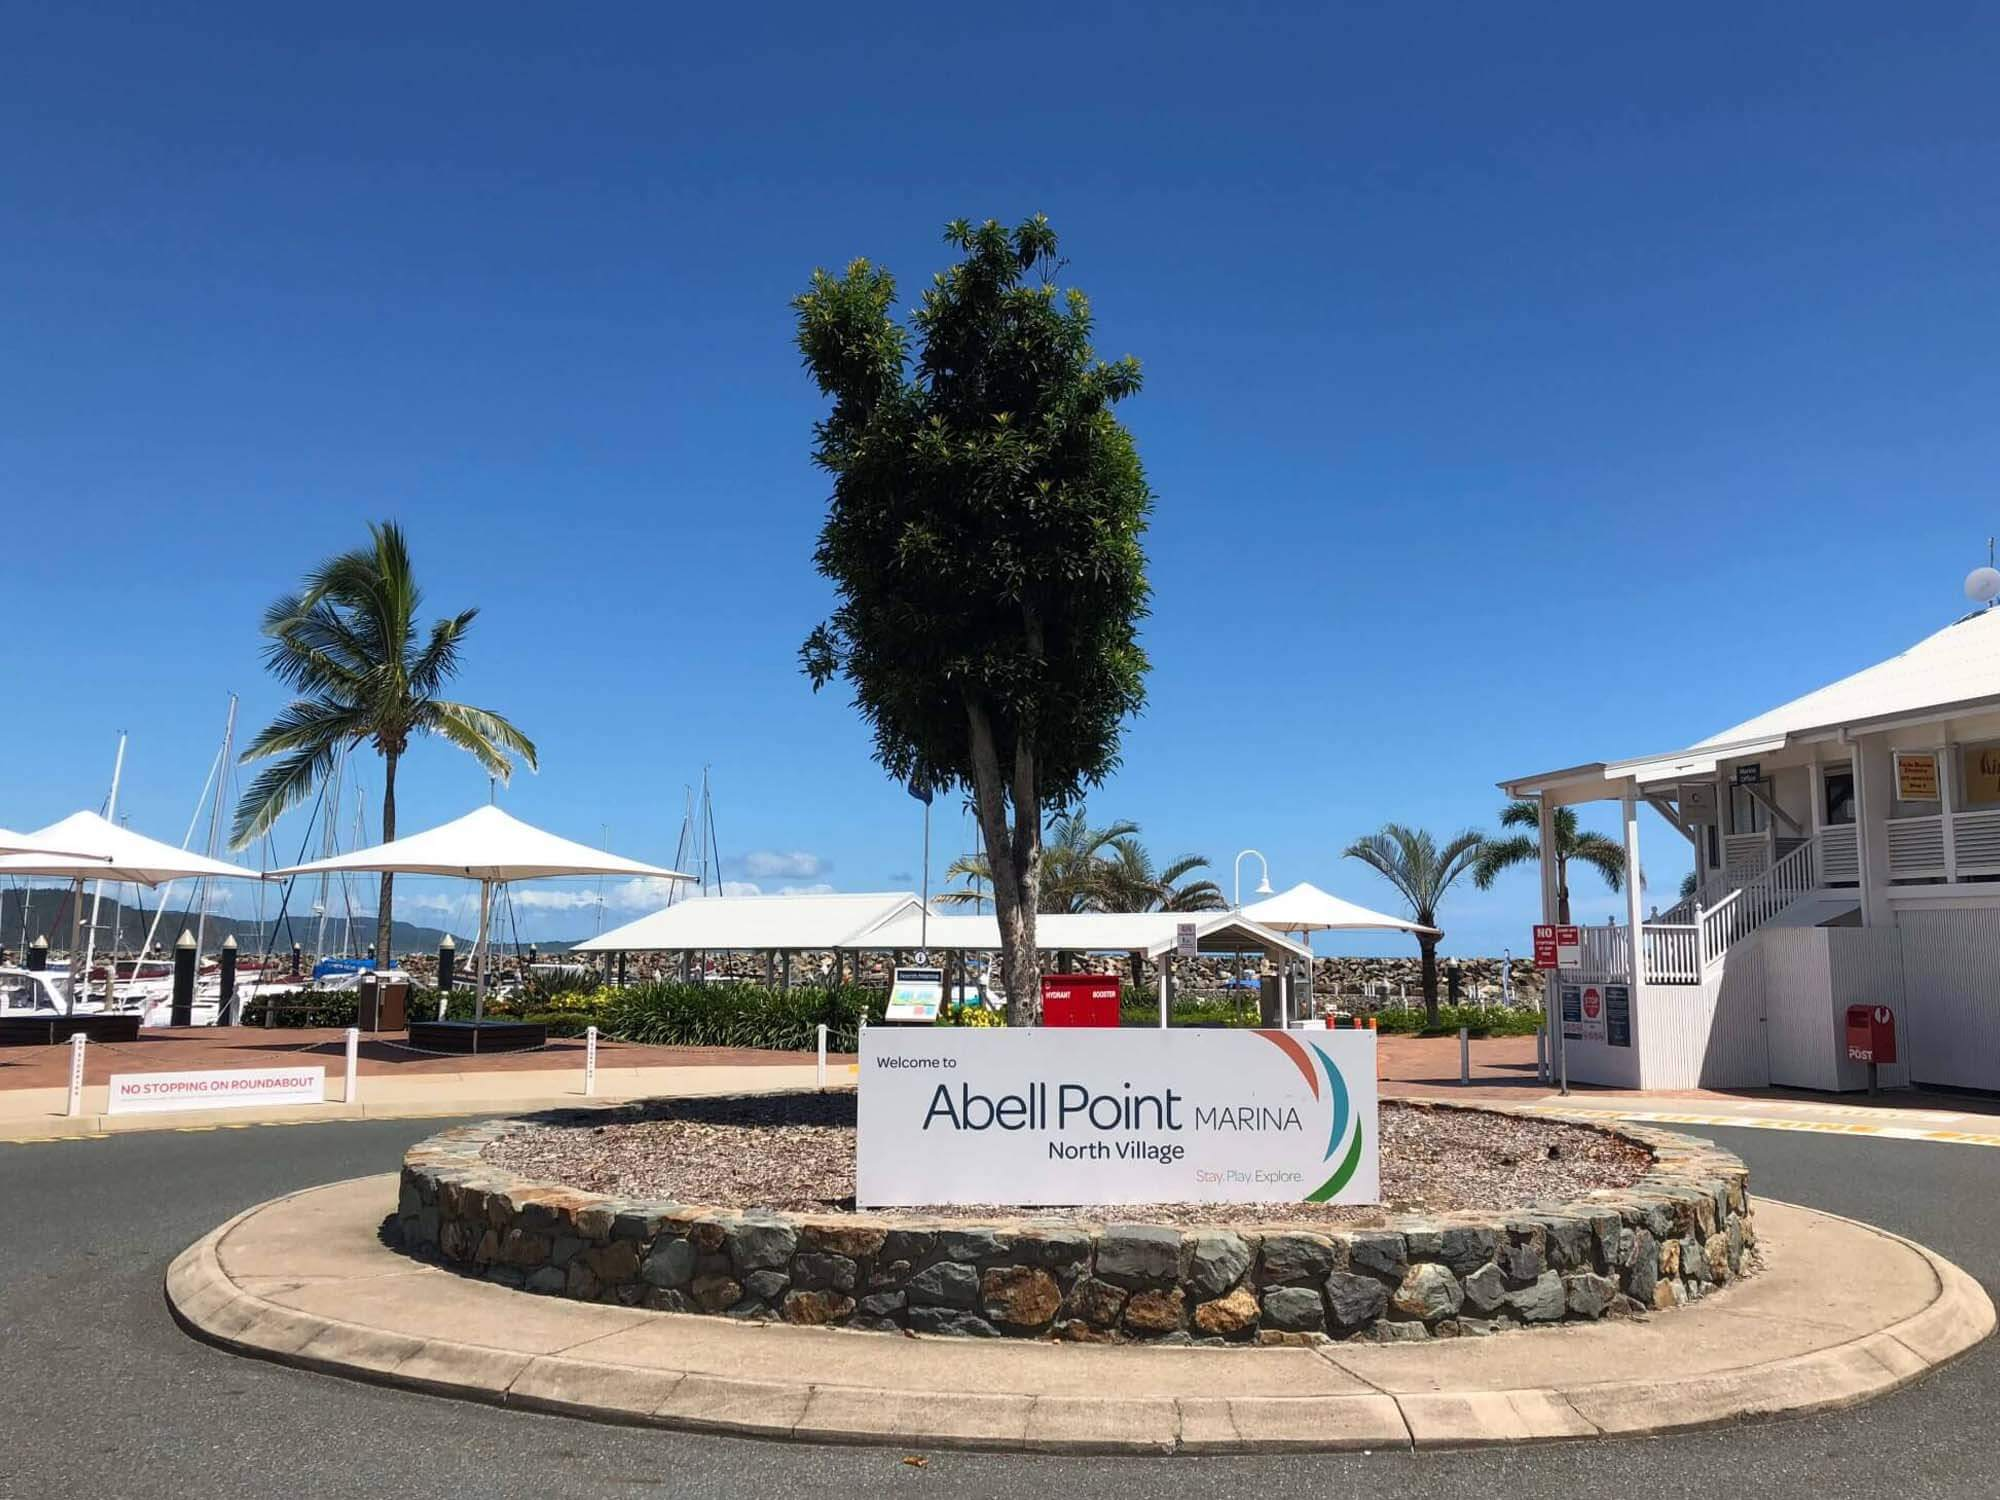 Abell Point Marina in Airlie Beach